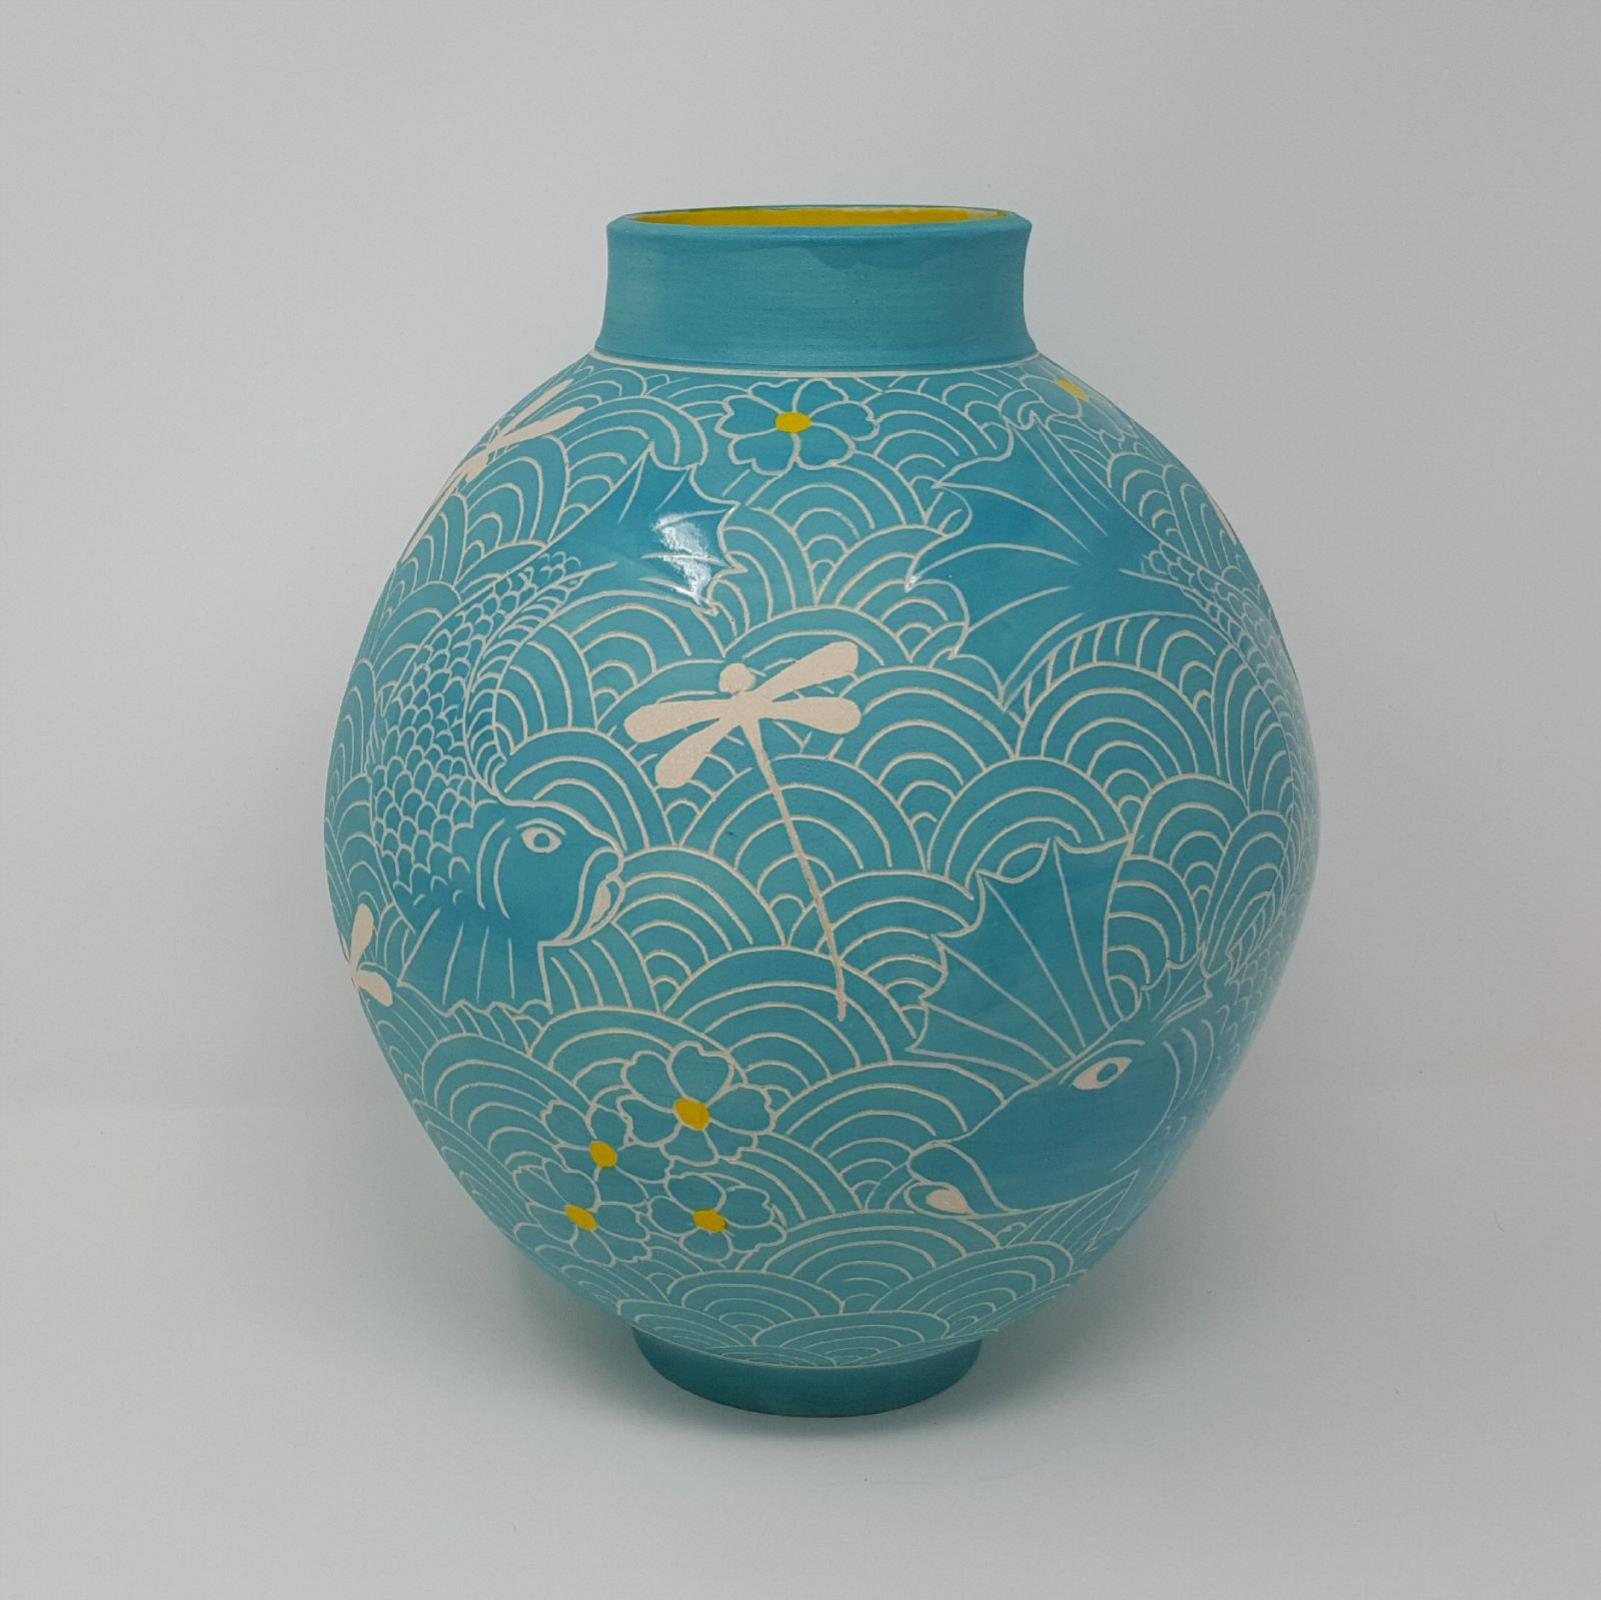 Moon Jar with Turquoise Fish and Dragonflies